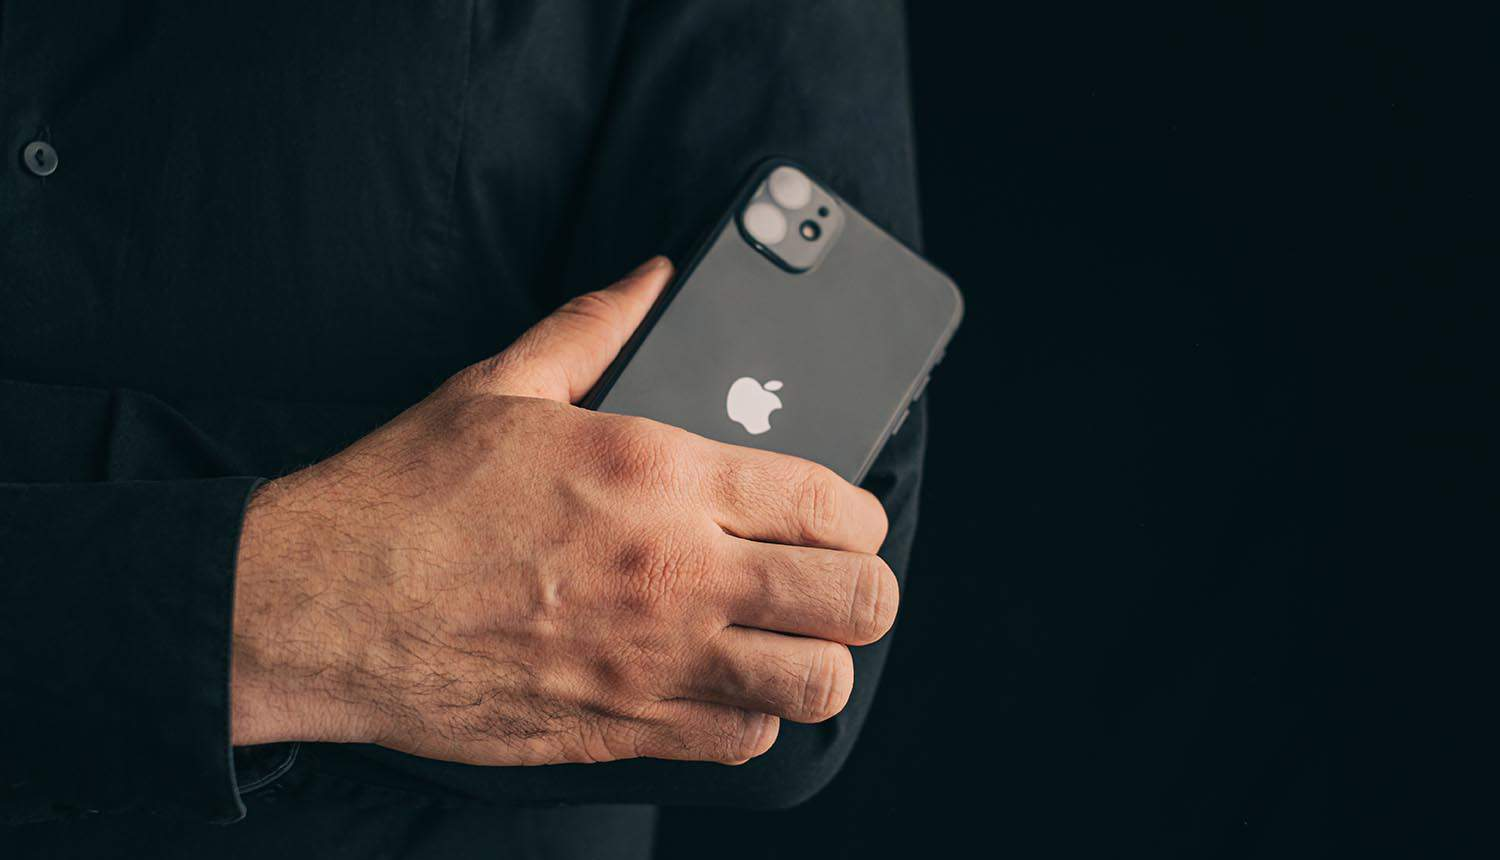 Businessman with folded arms cross his chest holding iPhone showing issues with phone data and iPhone repair